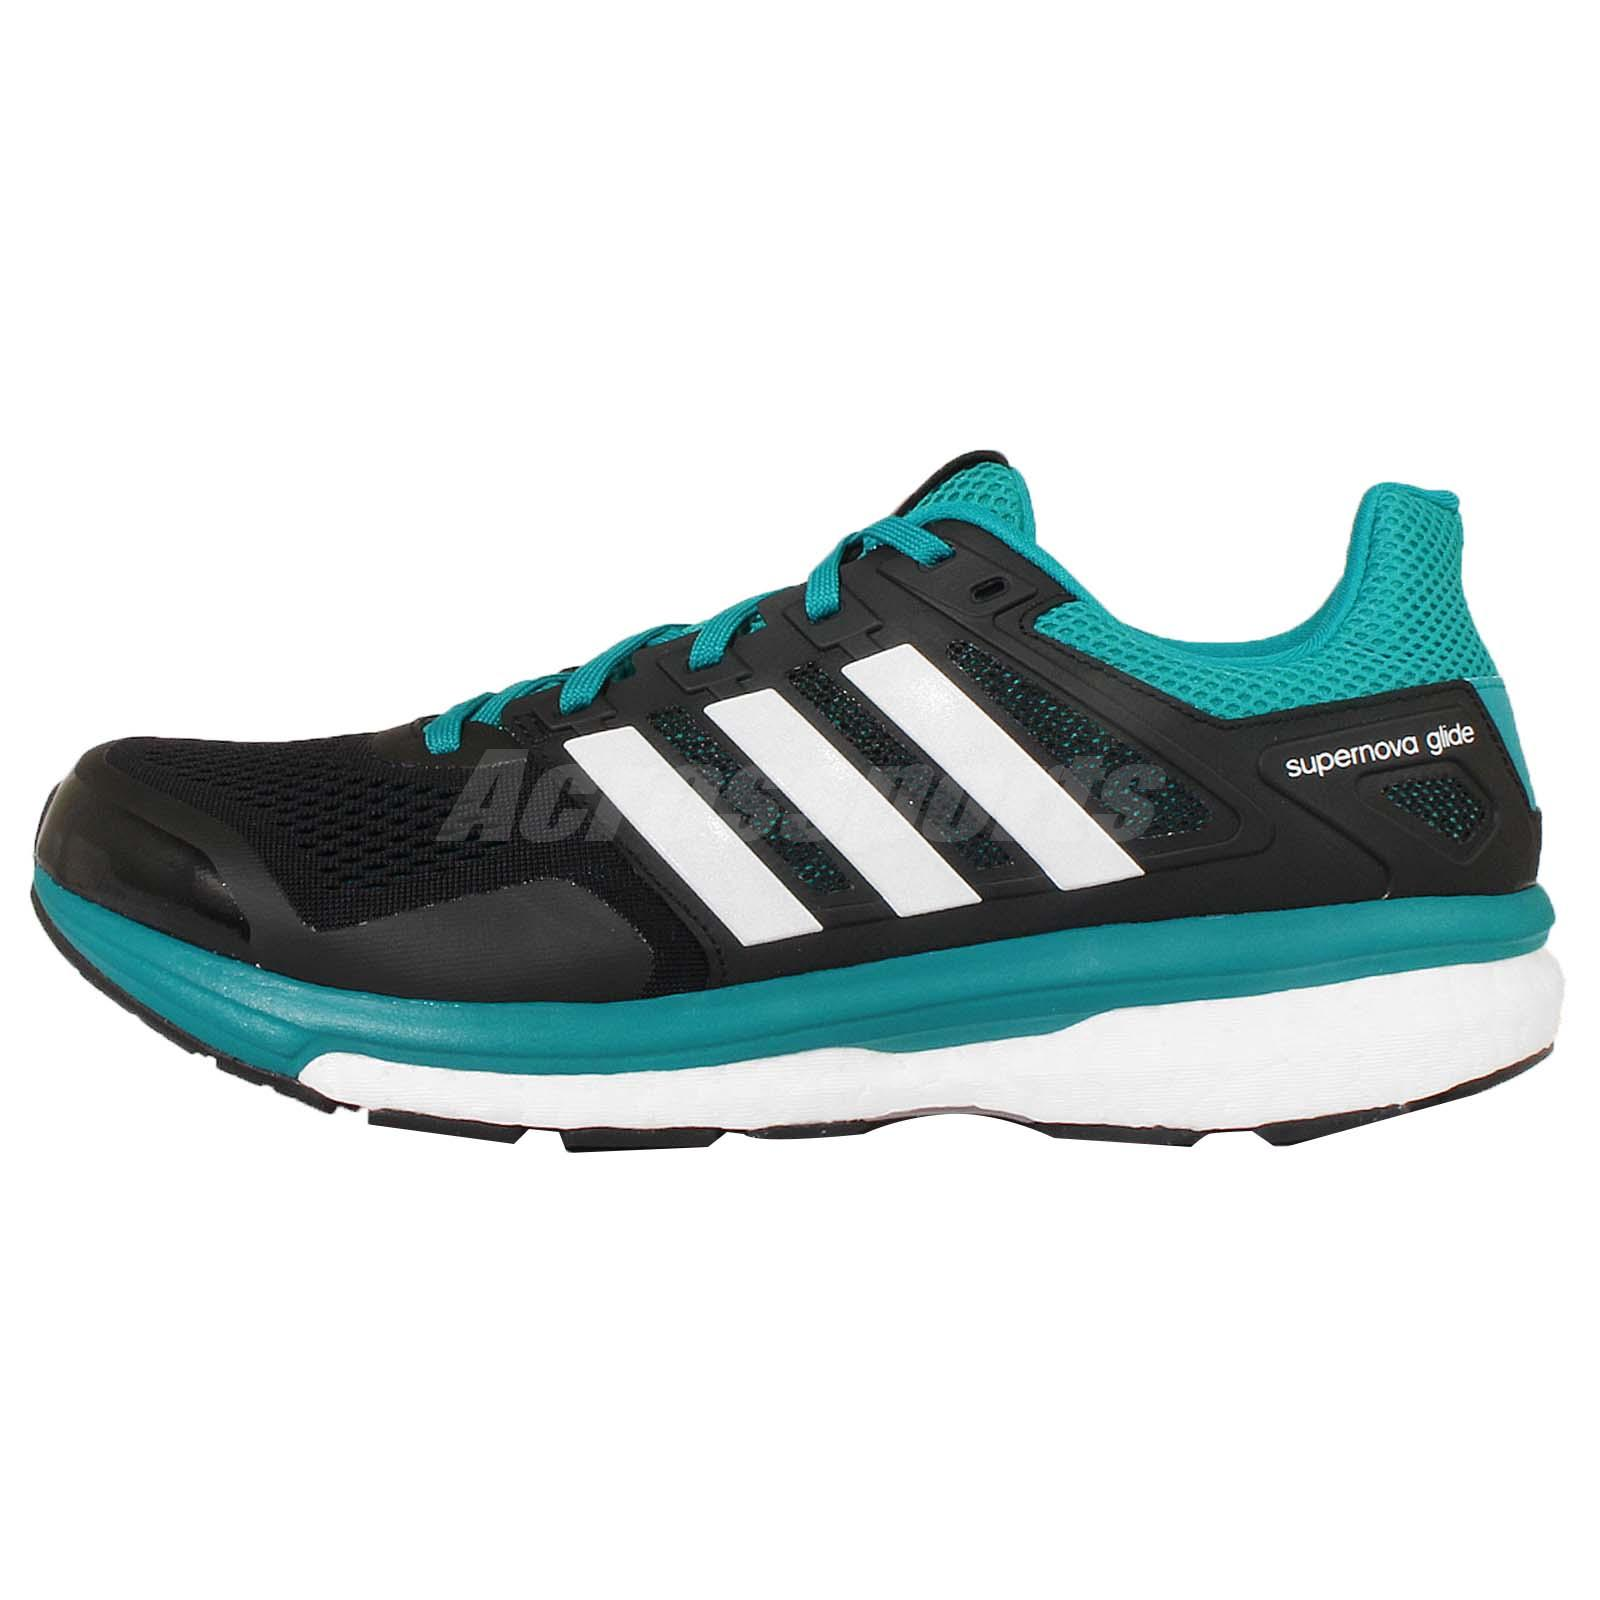 adidas supernova glide 8 m viii mens cushion running shoes sneakers pick 1 ebay. Black Bedroom Furniture Sets. Home Design Ideas